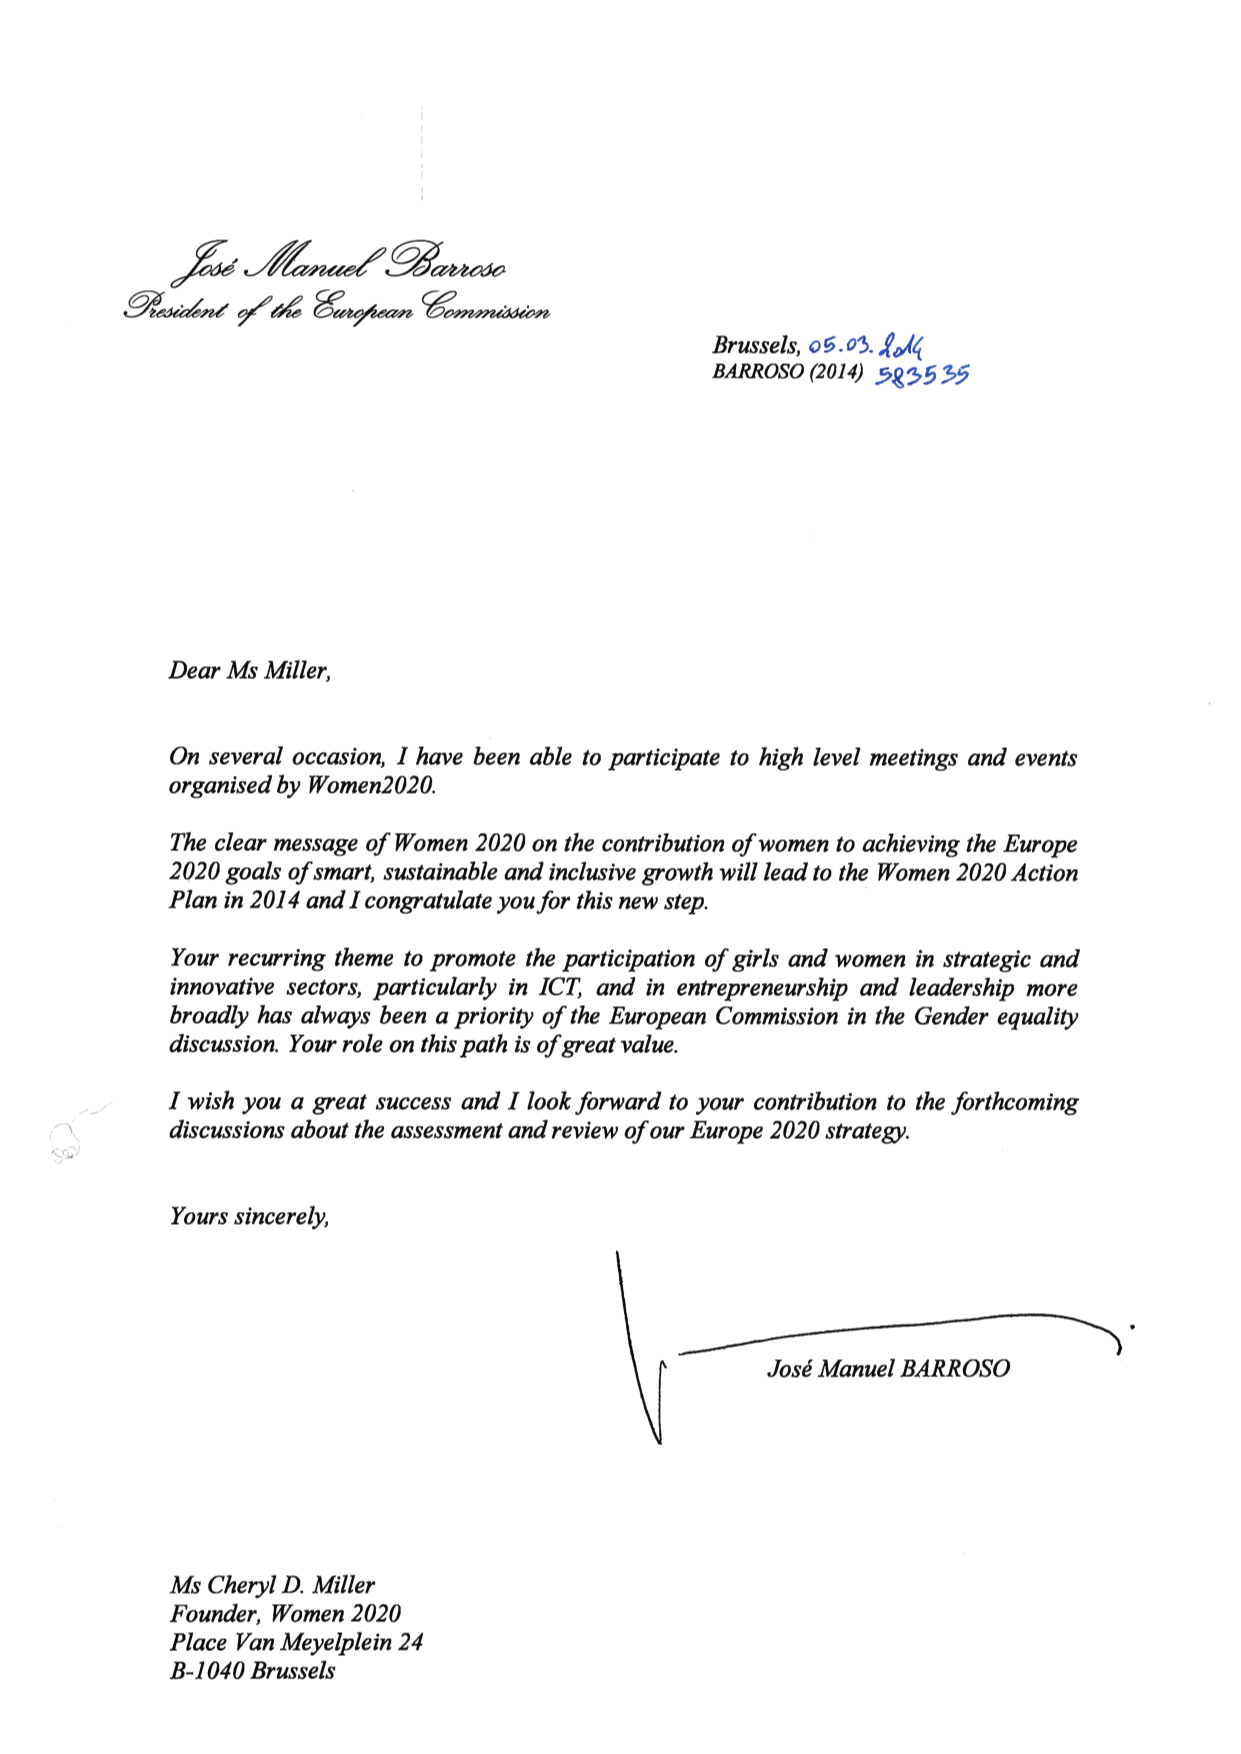 successful dli launch digital leadership institute barroso letter for women2020 women2020